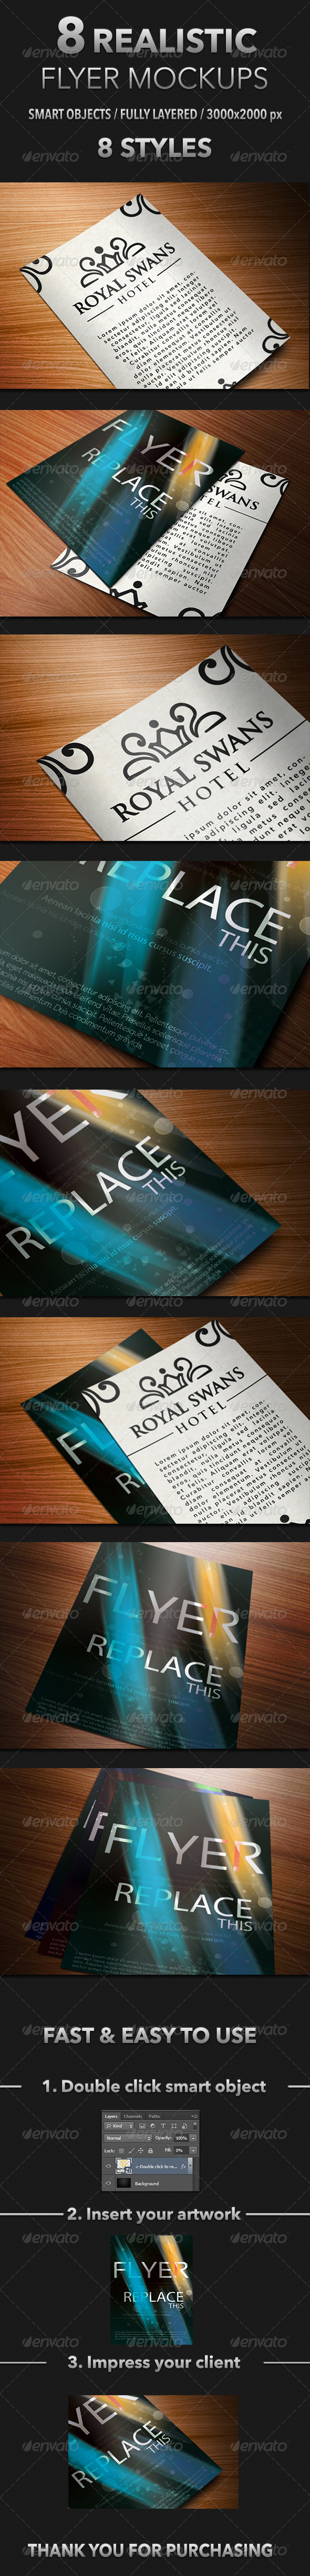 GraphicRiver 8 Realistic Flyer Mockups 4530965